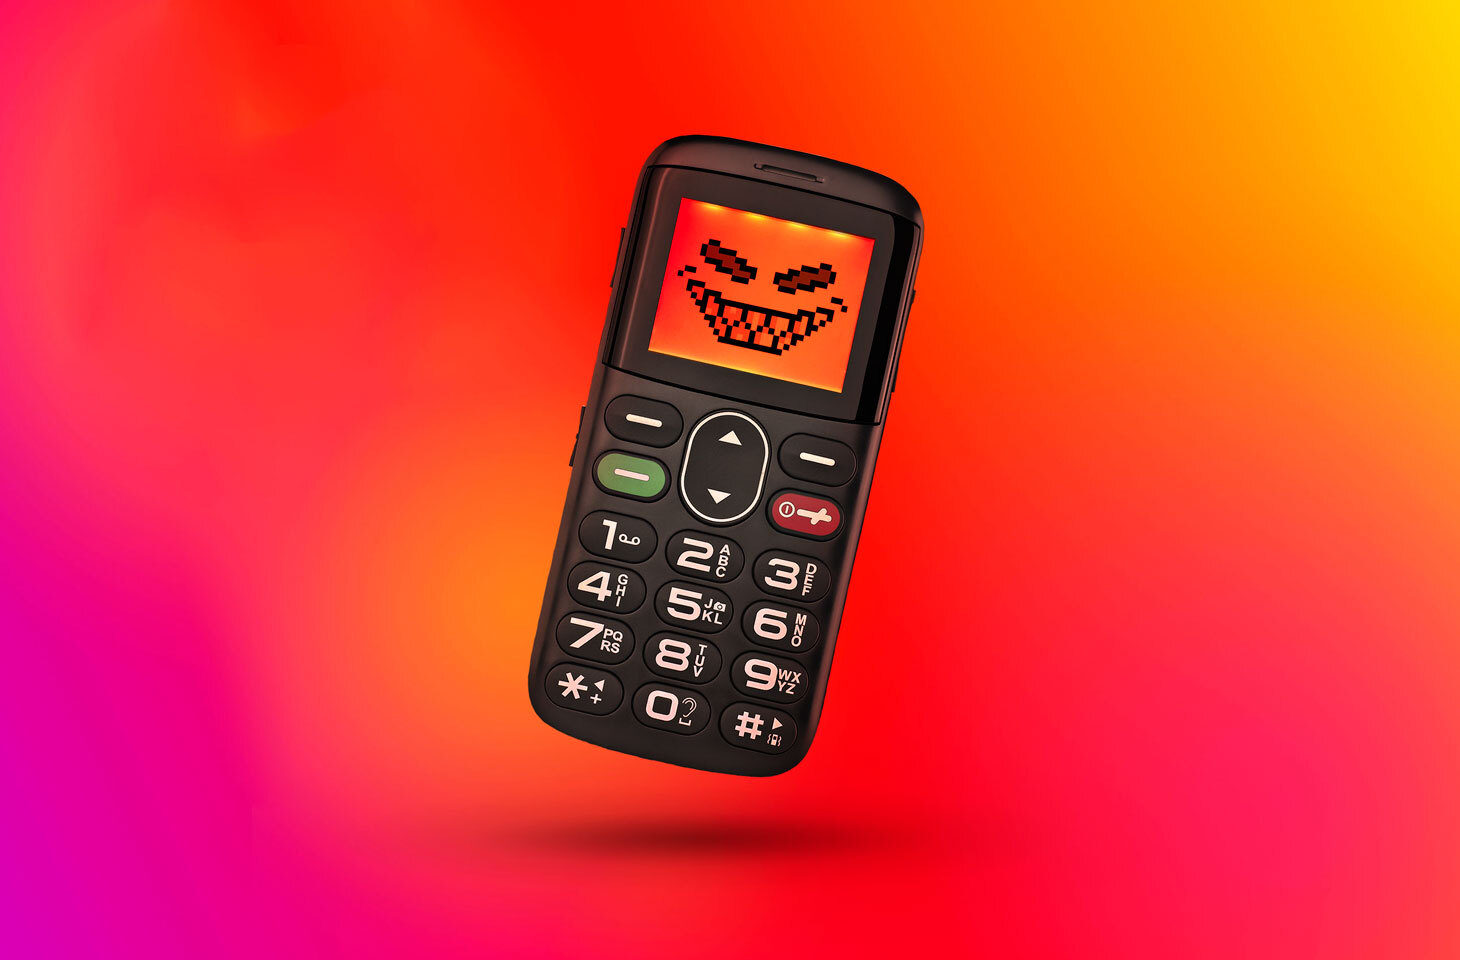 Feature phones can be dangerous, too | Kaspersky official blog